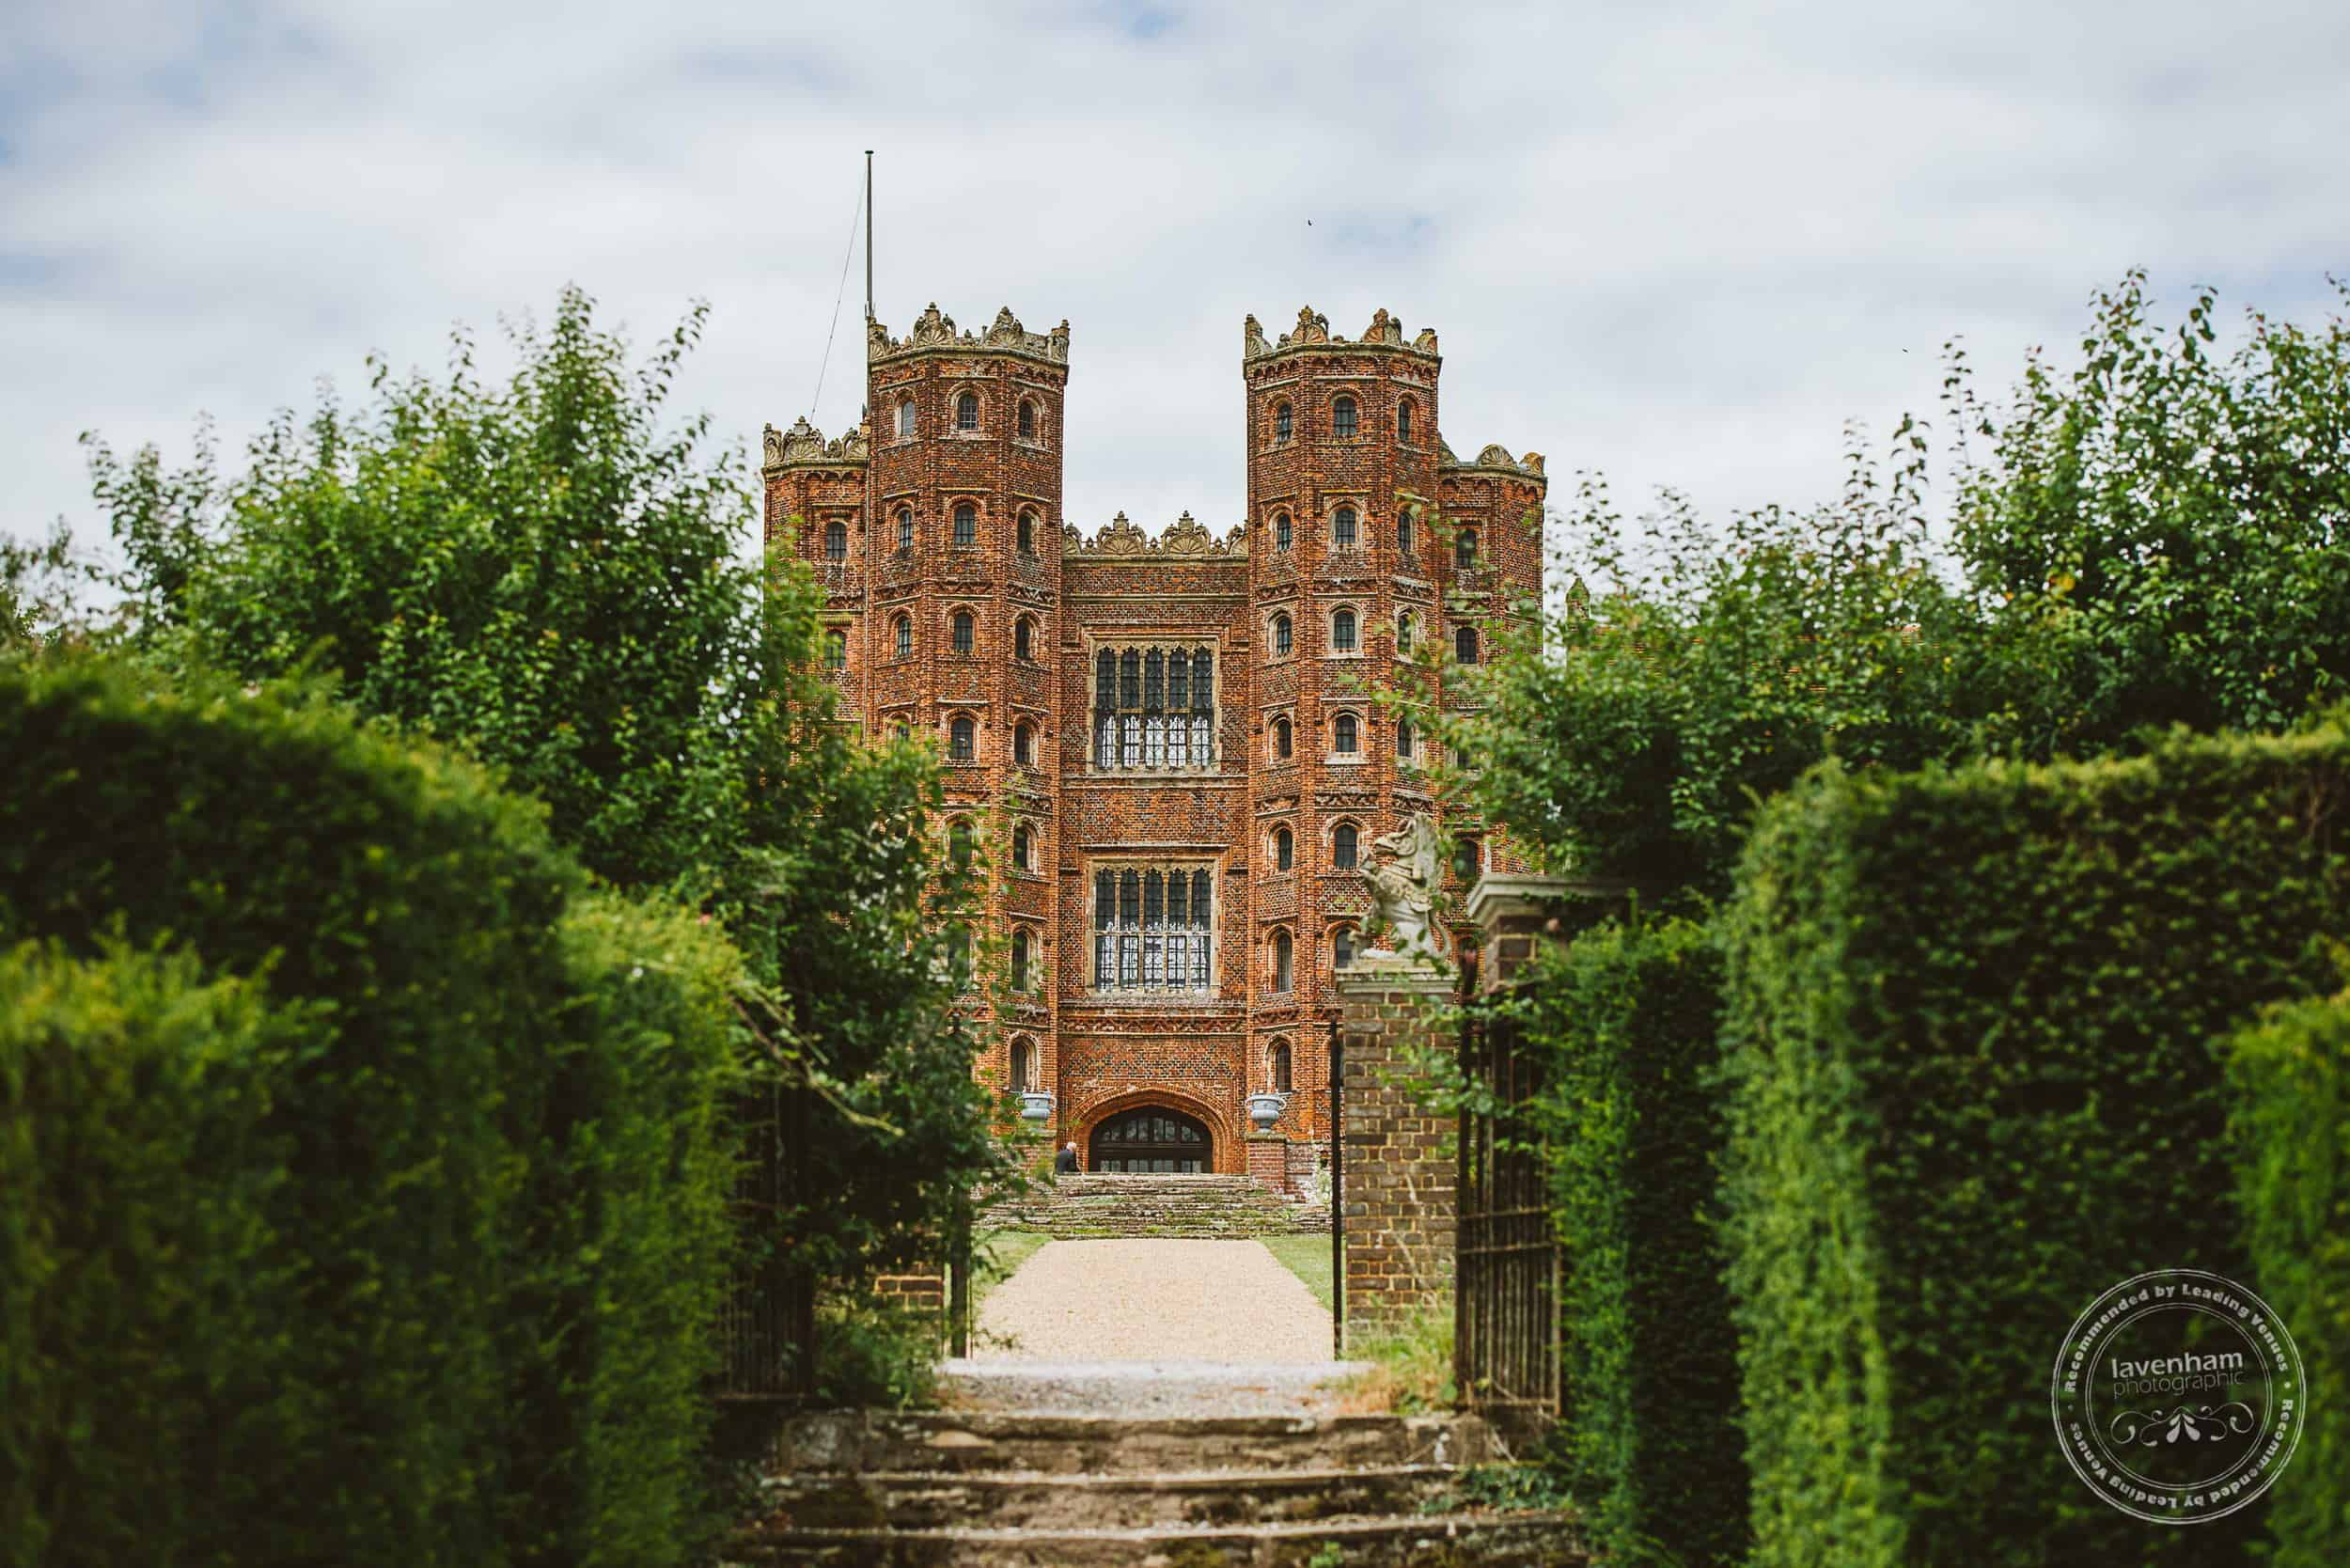 140717 Layer Marney Wedding Photography by Lavenham Photographic 050